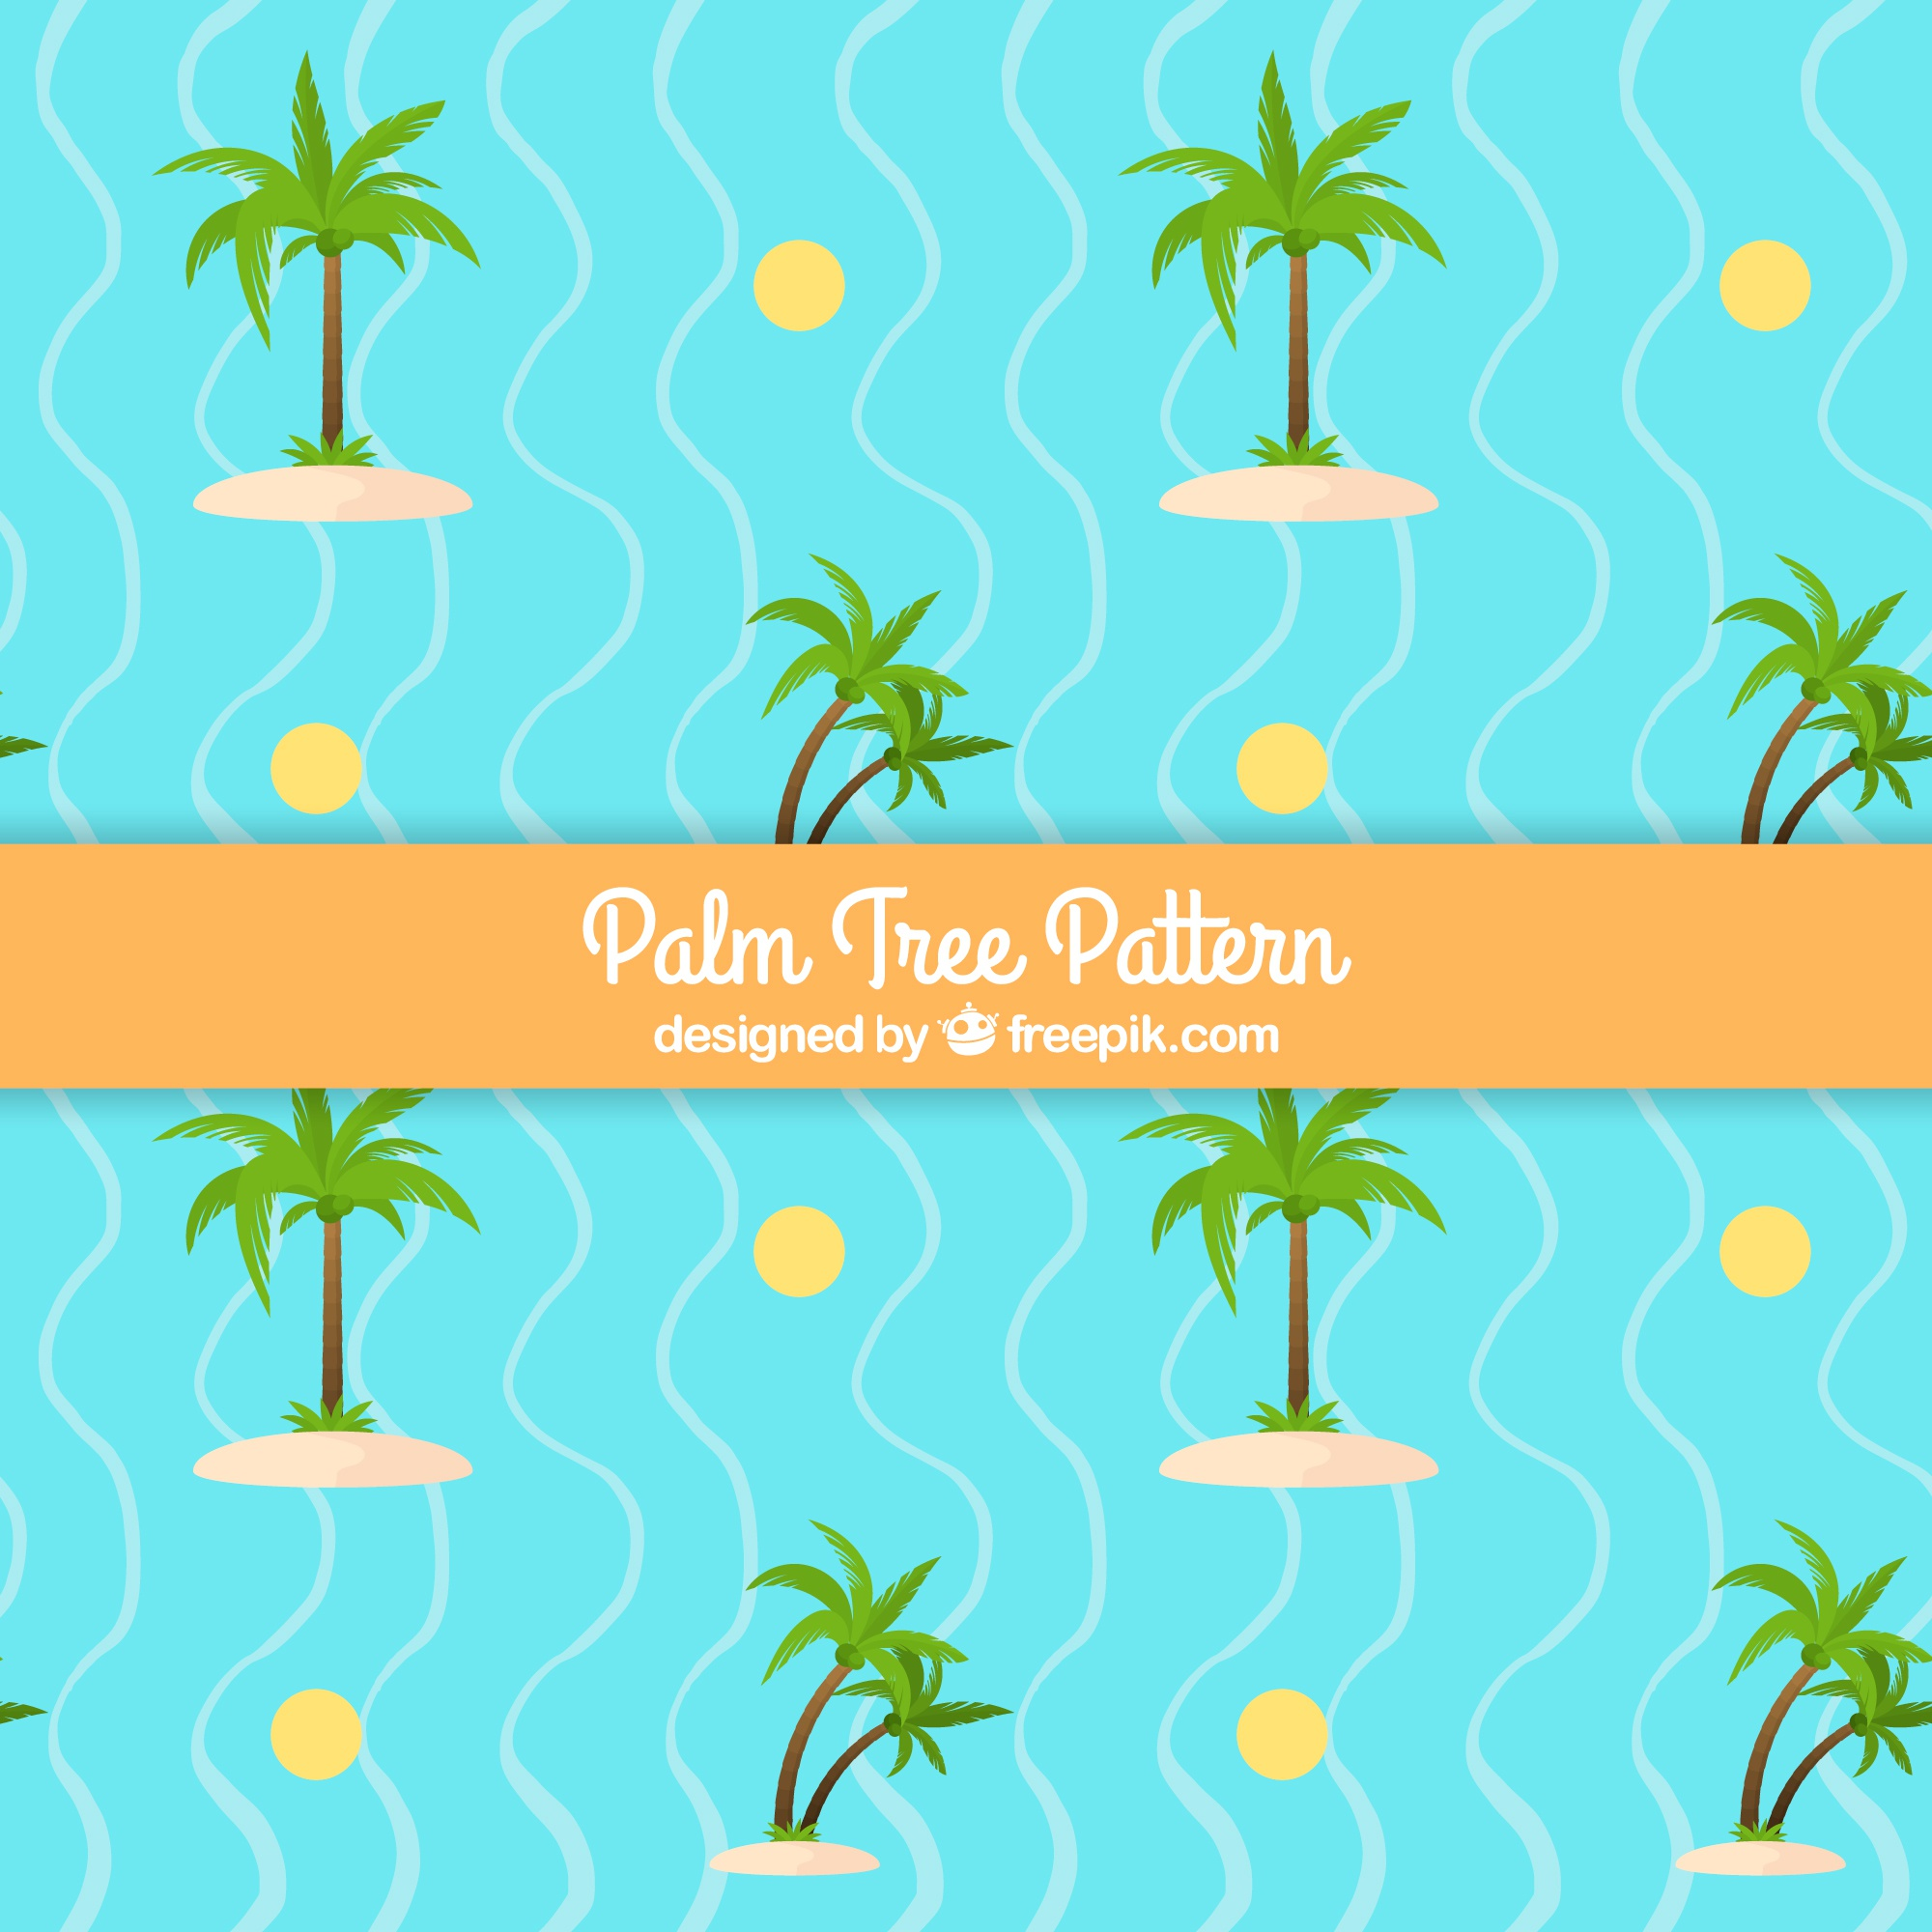 Fantastic pattern with palm trees and wavy lines